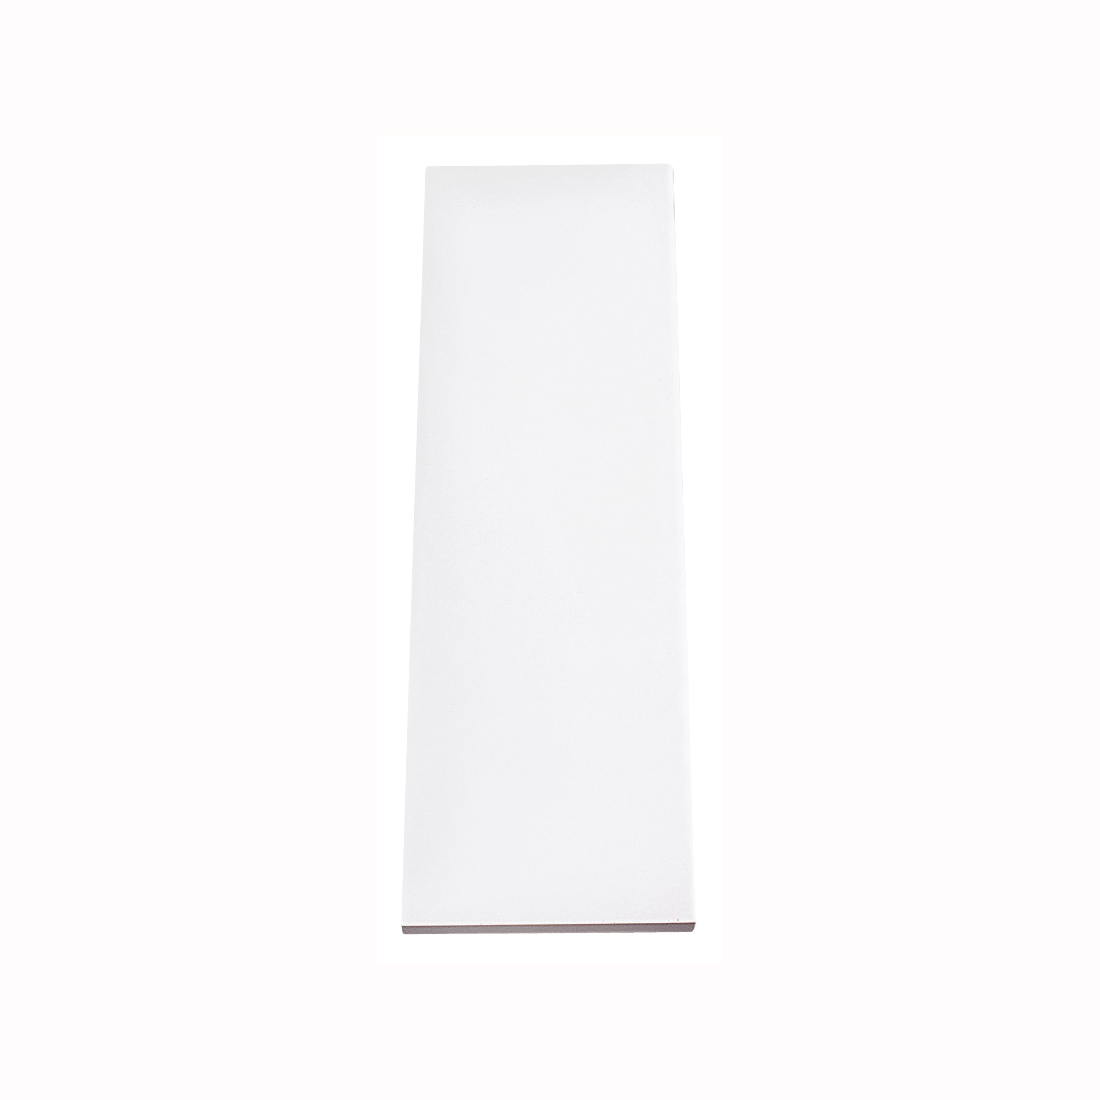 Picture of Knape & Vogt 1980 WH 8X24 Shelf Board, 200 lb, 5-Shelf, 24 in L, 8 in W, Particleboard